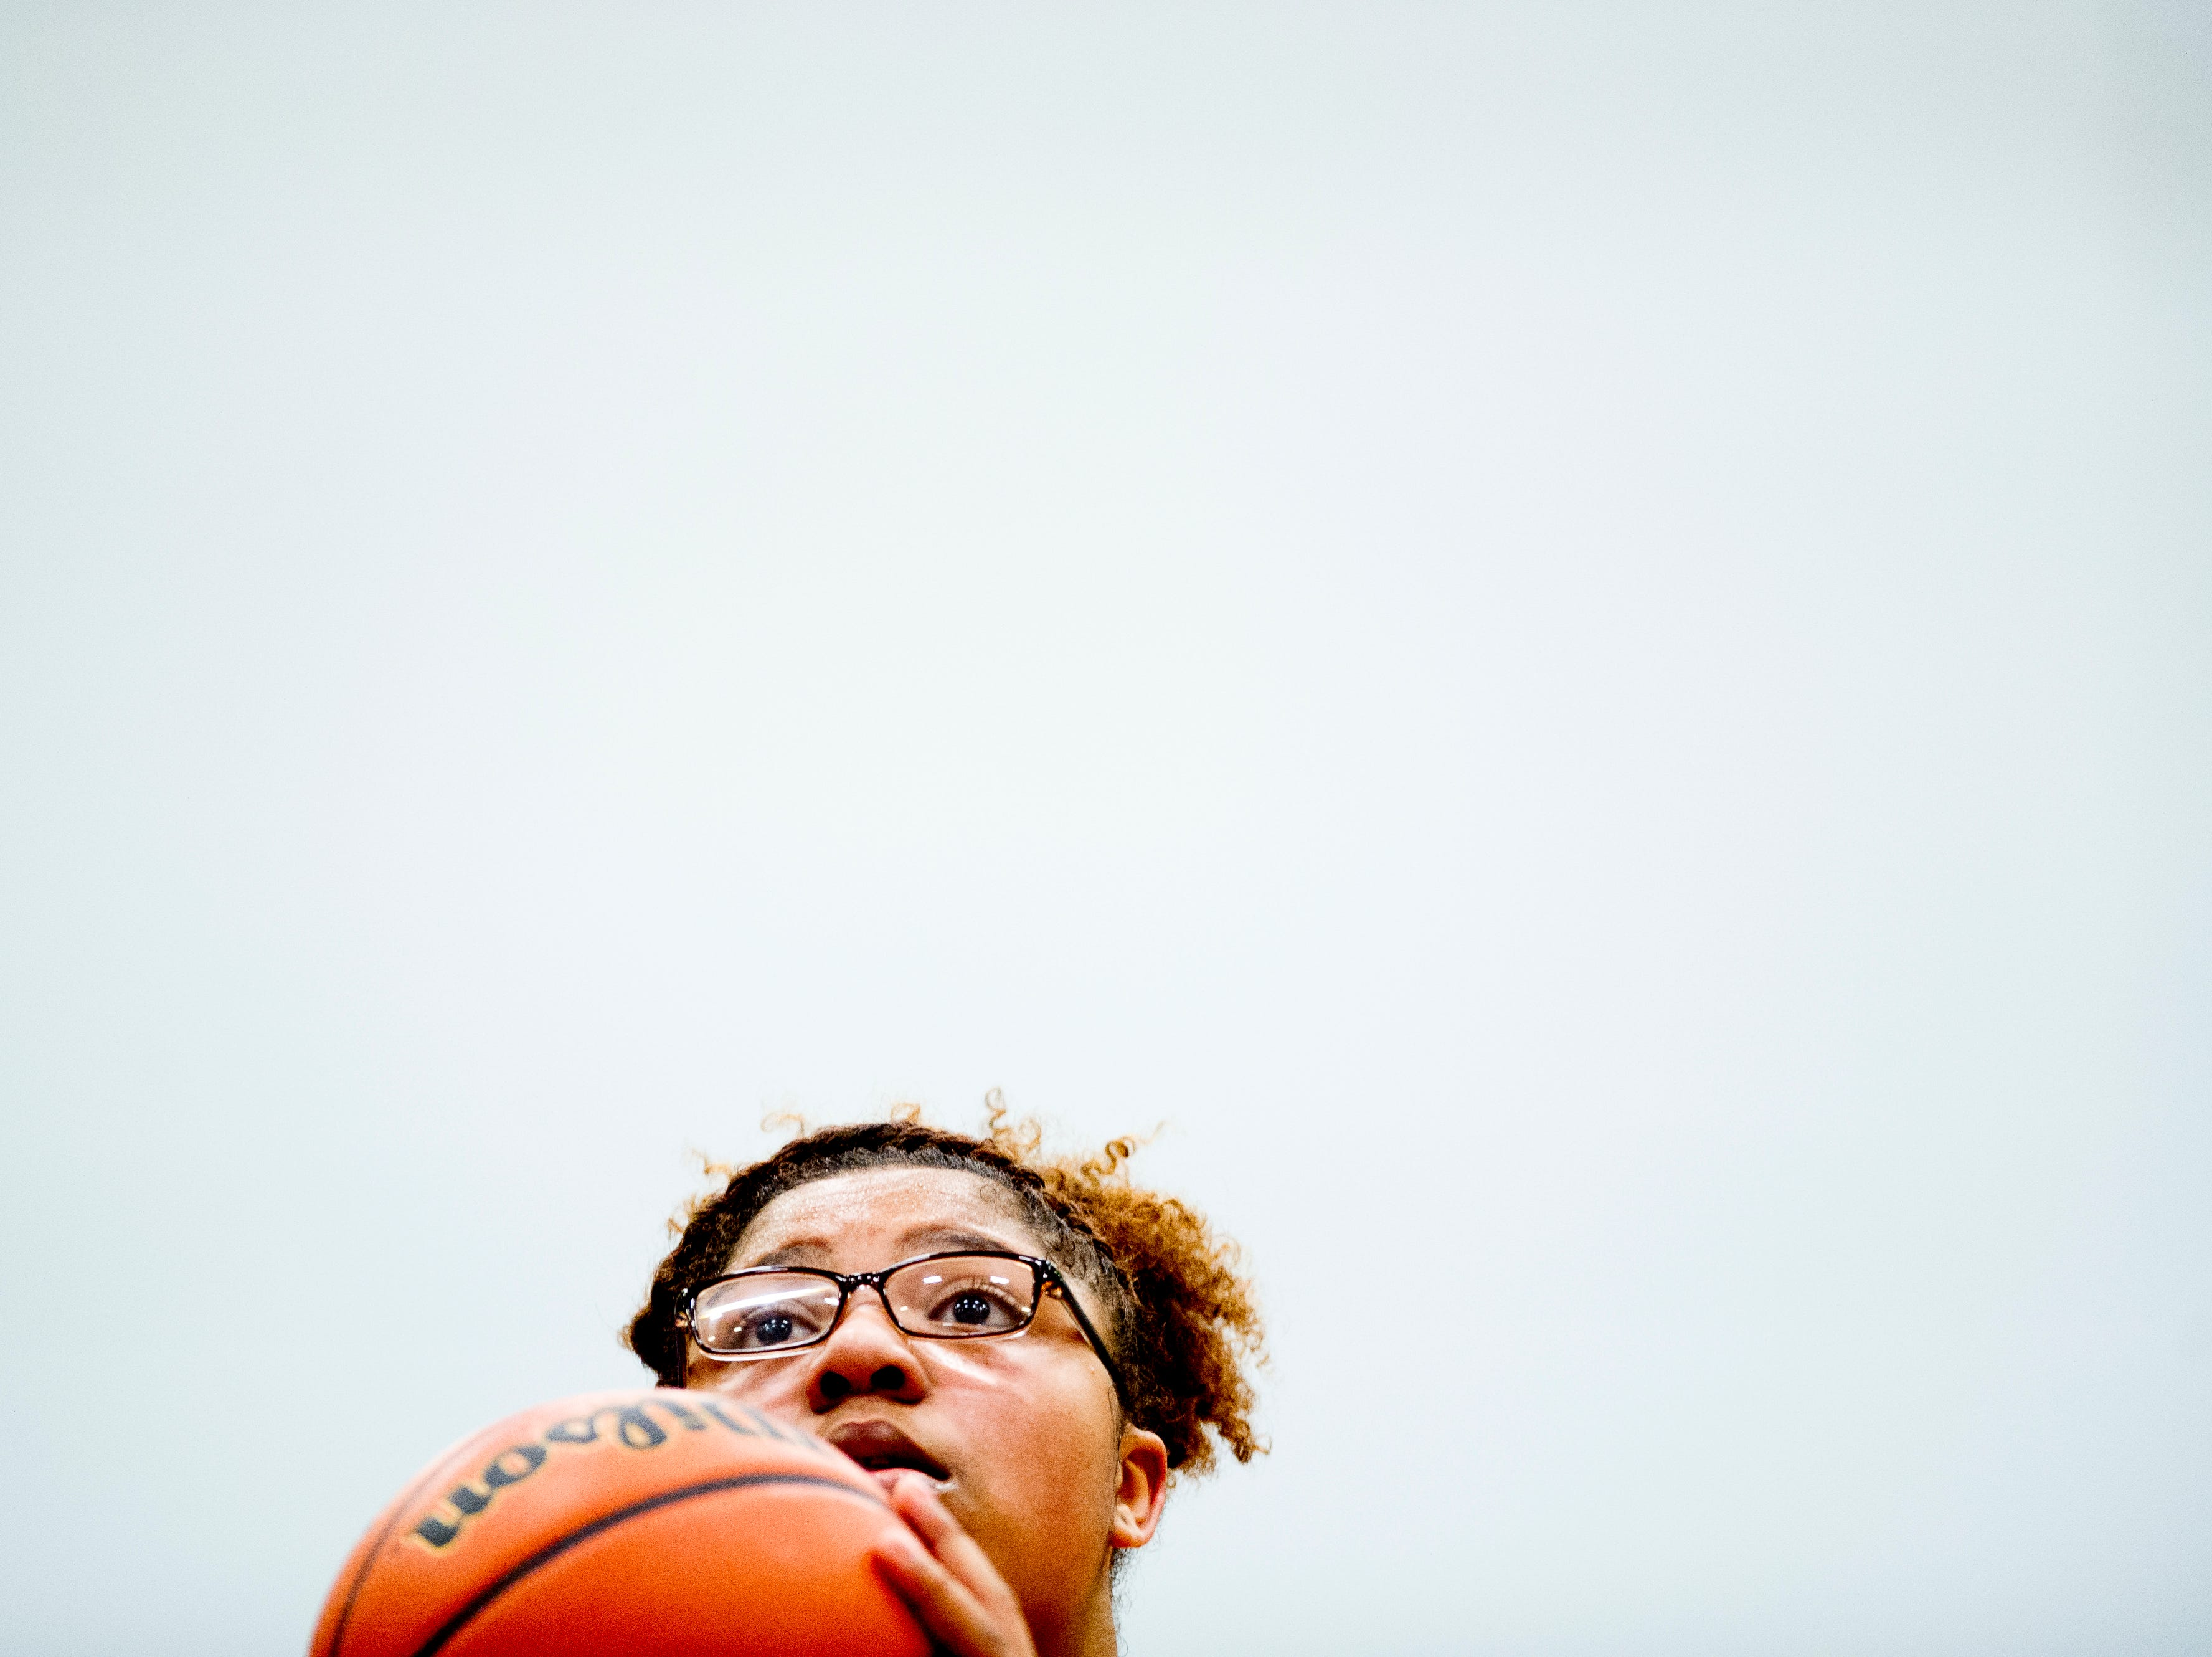 Austin-East's AnDaja Ware (30) shoots a free throw during a game between Austin-East and Fulton at Austin-East High School in Knoxville, Tennessee on Saturday, January 5, 2019.